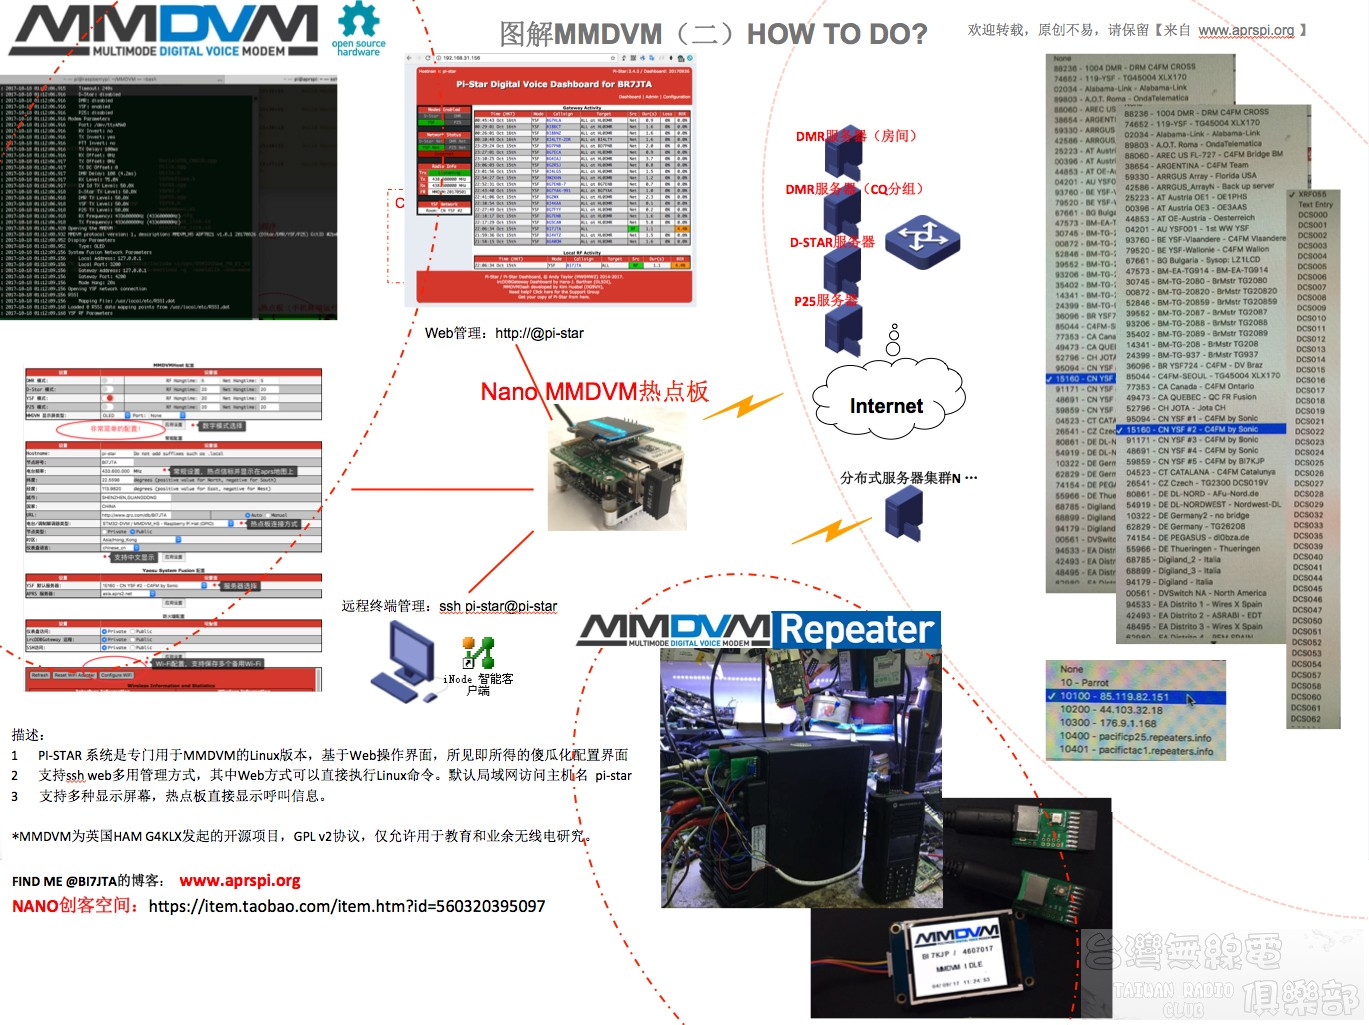 How-to-do-mmdvm_From www.aprspi.org.jpg